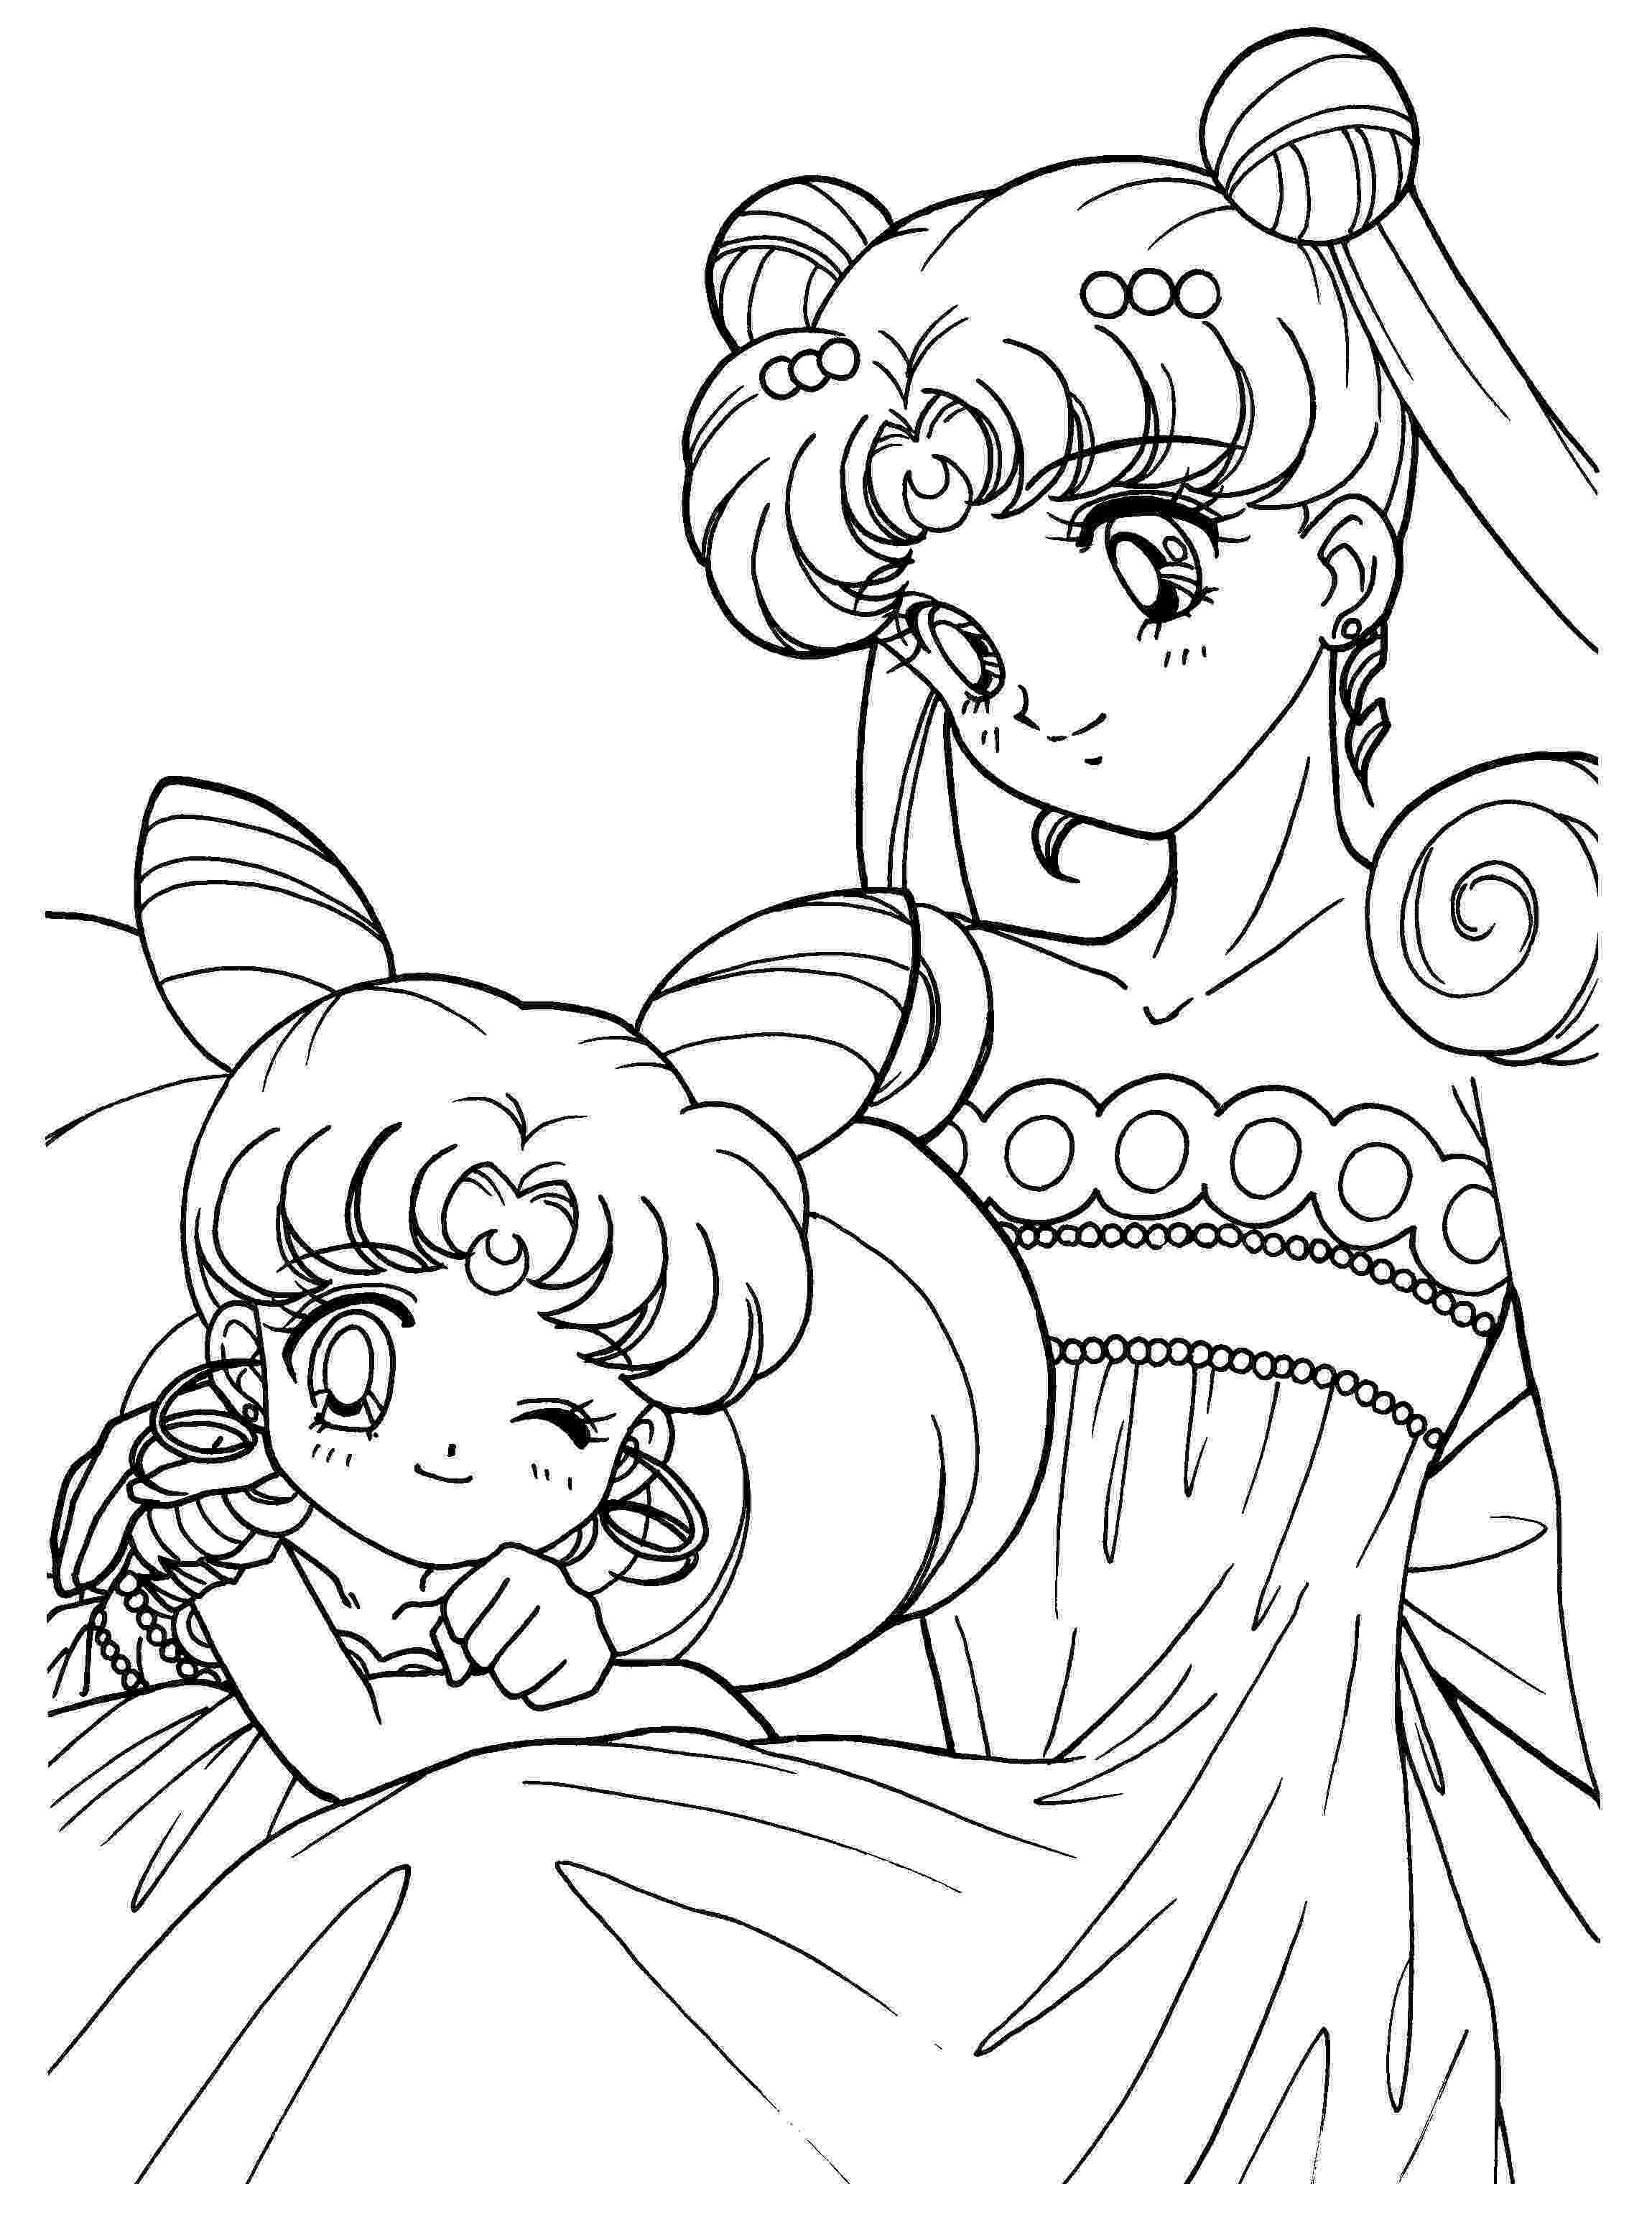 anime coloring pages online free printable anime coloring pages for kids cool2bkids online coloring anime pages